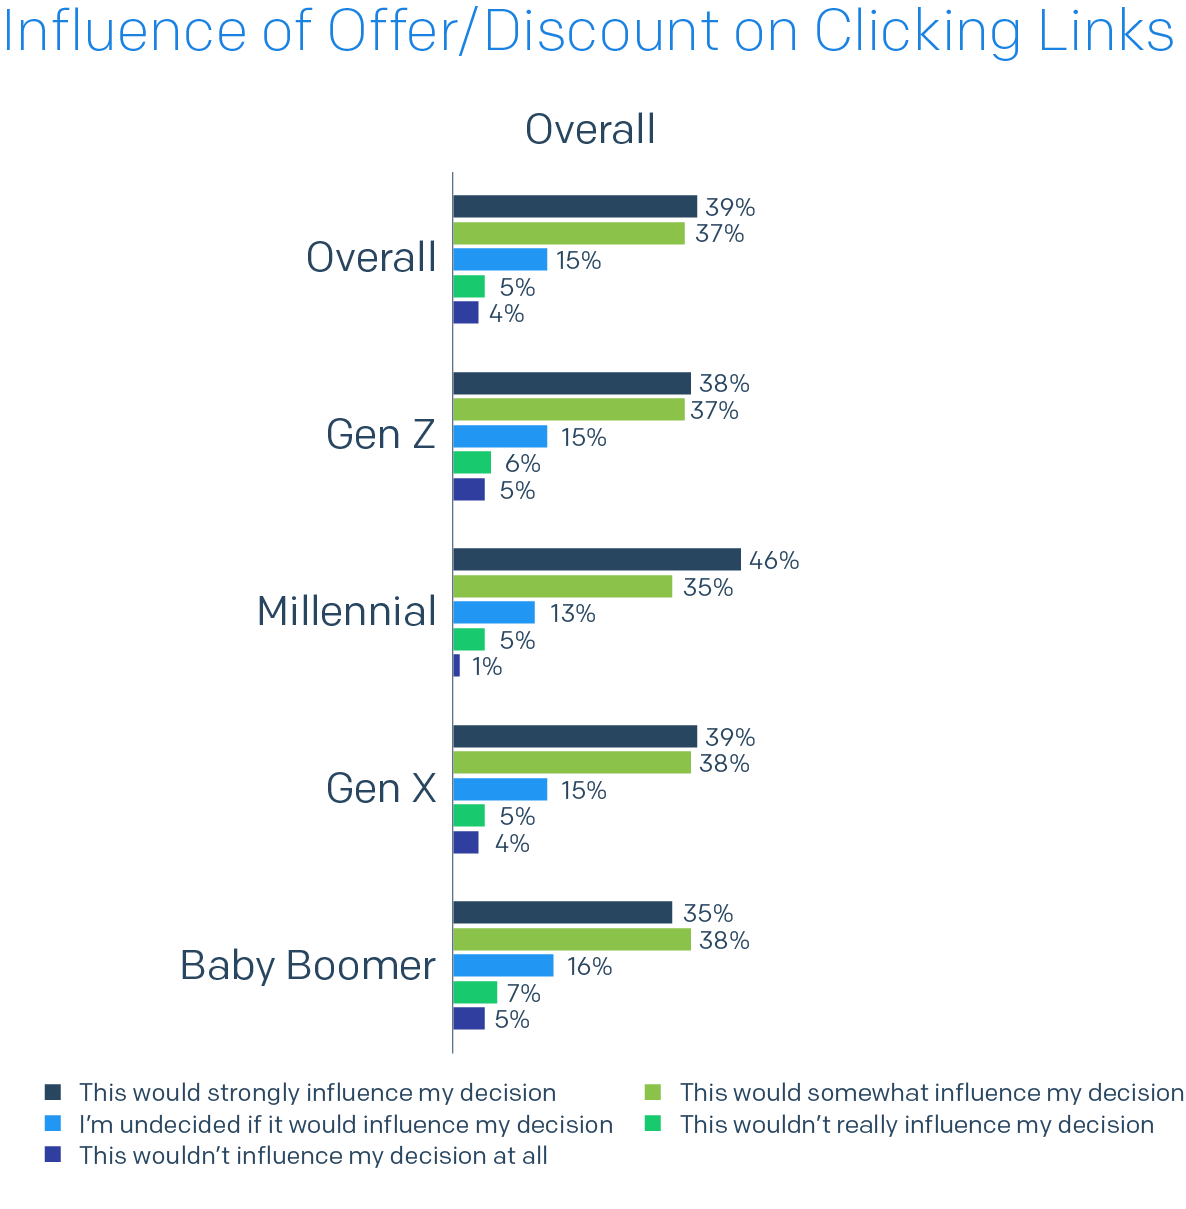 Bar chart of Influence of Offer/Discount on Clicking Links